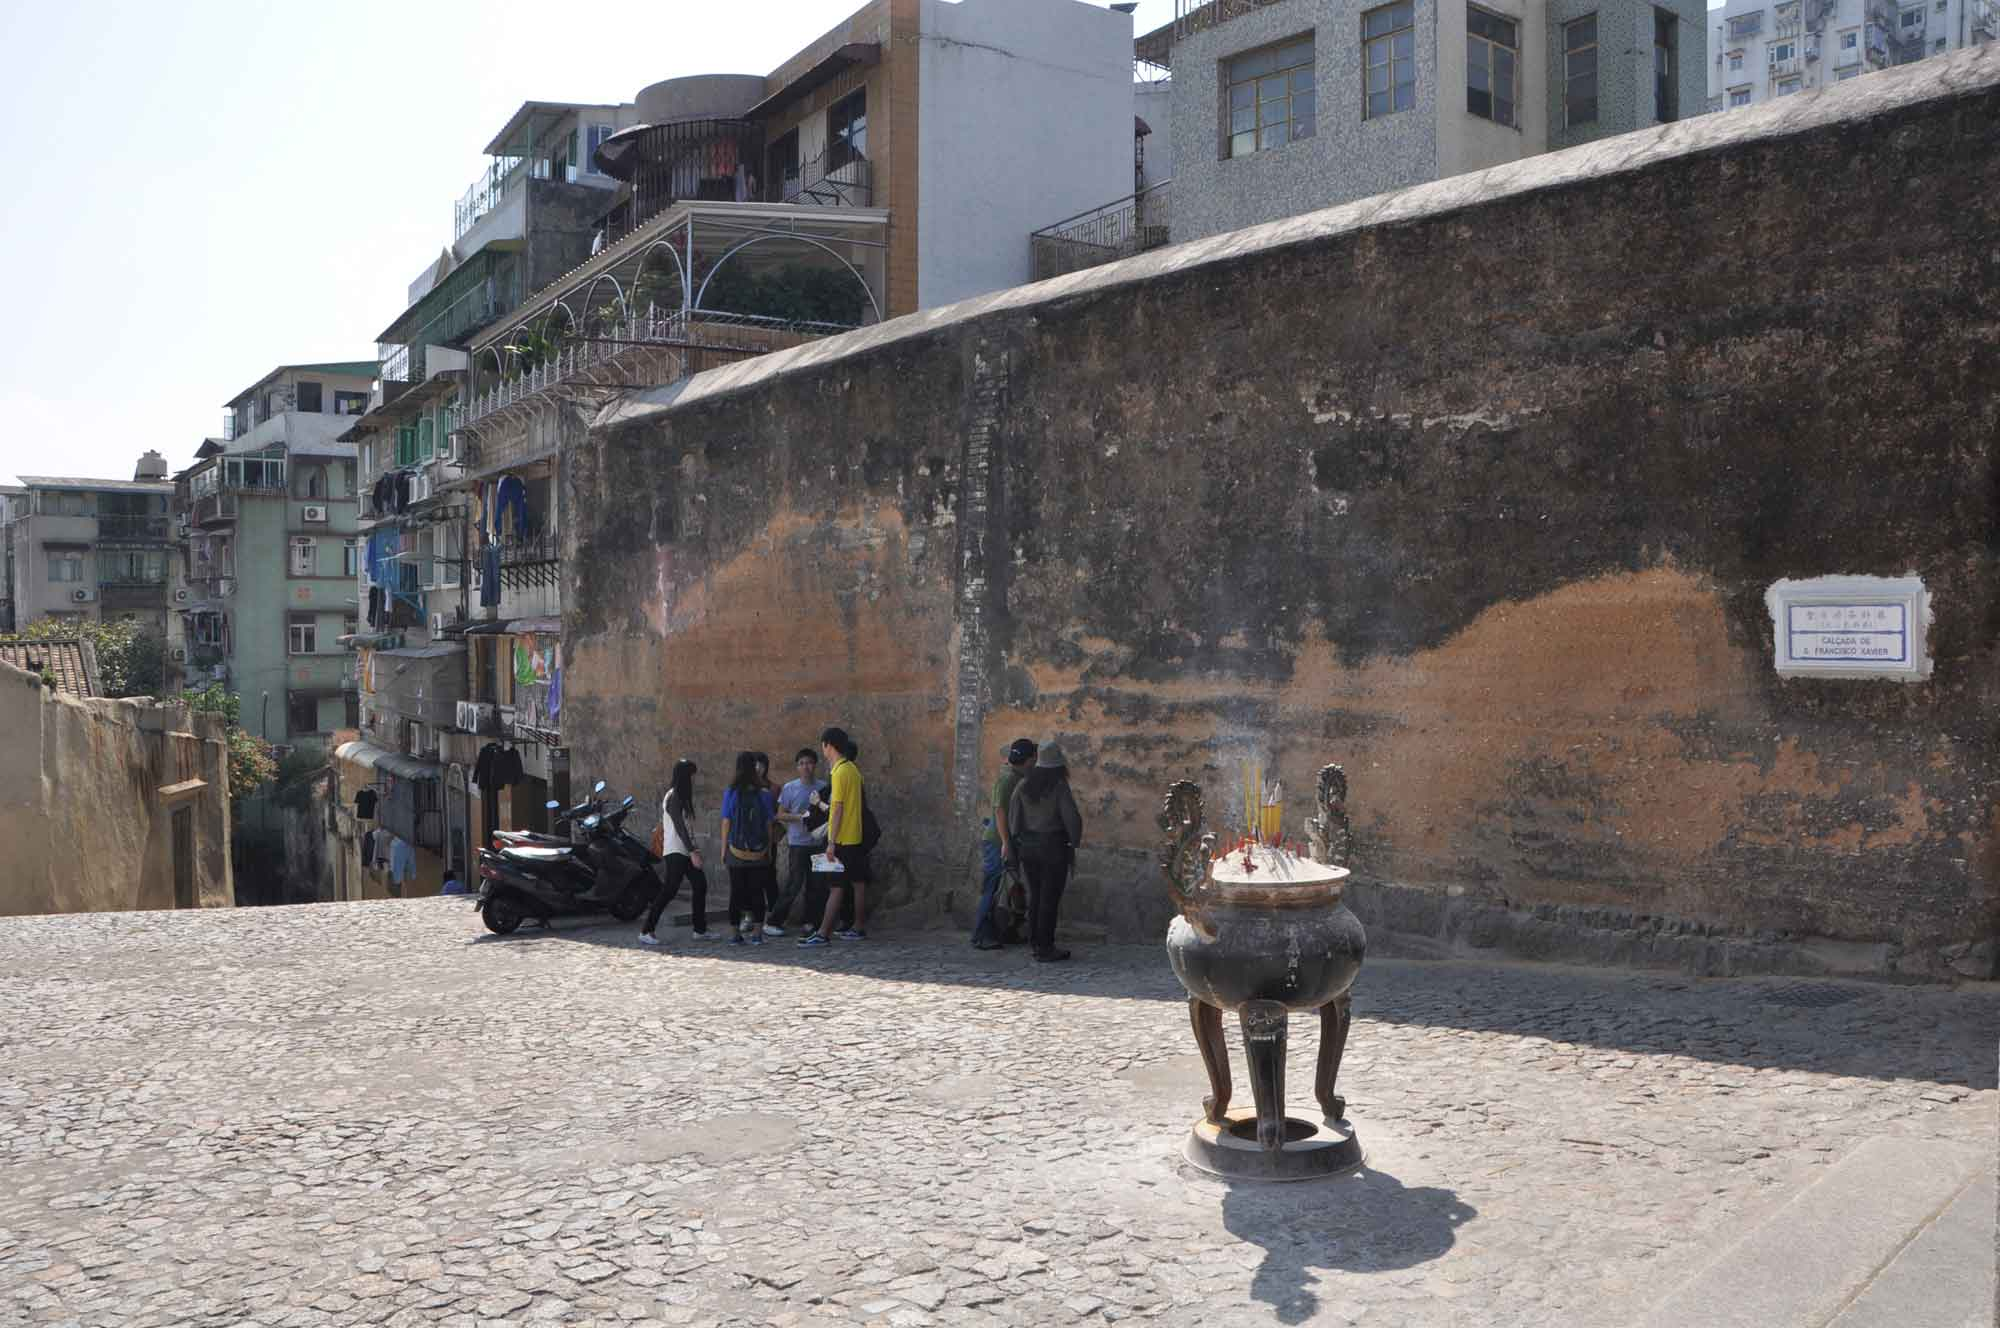 Macau World Heritage Site: Section of the Old City Walls